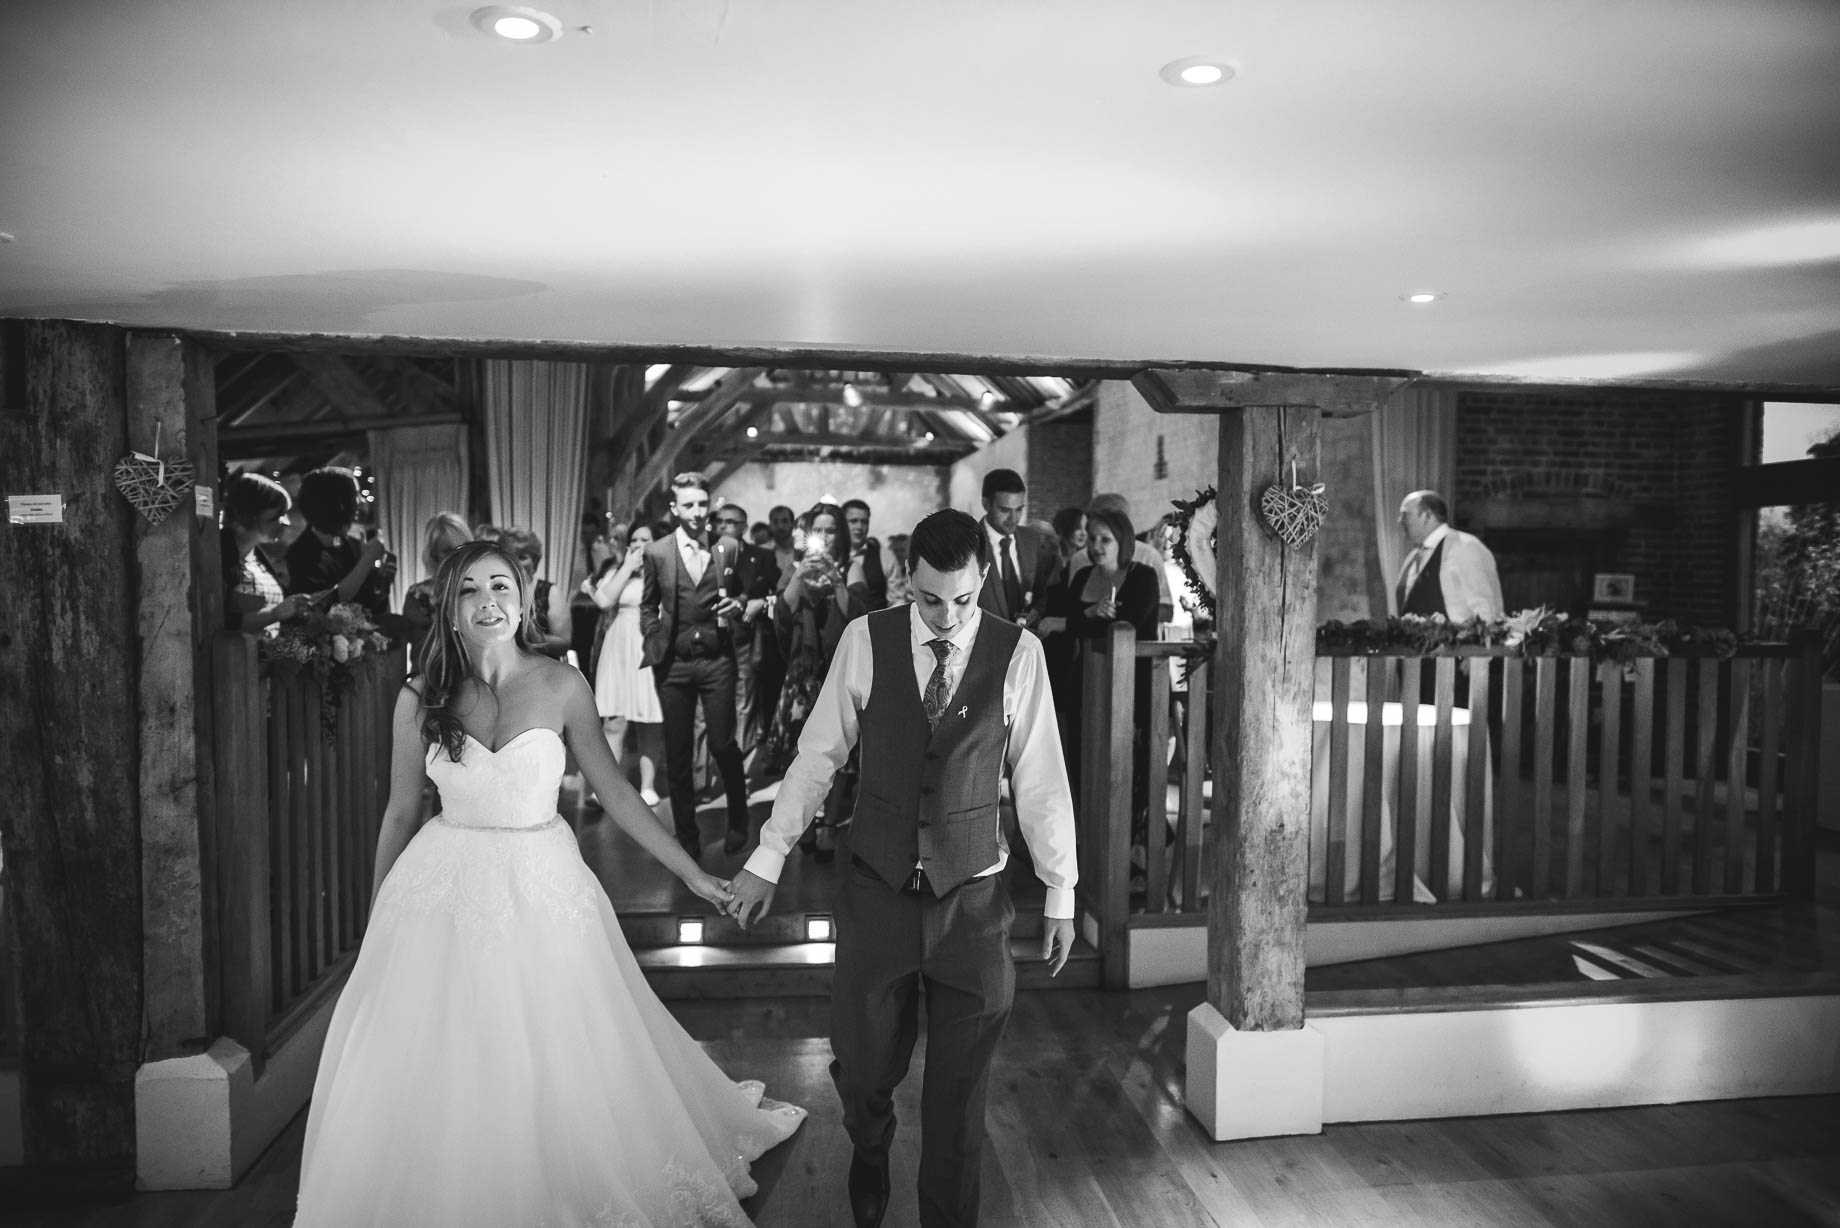 Bury Court Barn wedding photography - Guy Collier - Kirsty and Lewis (141 of 150)